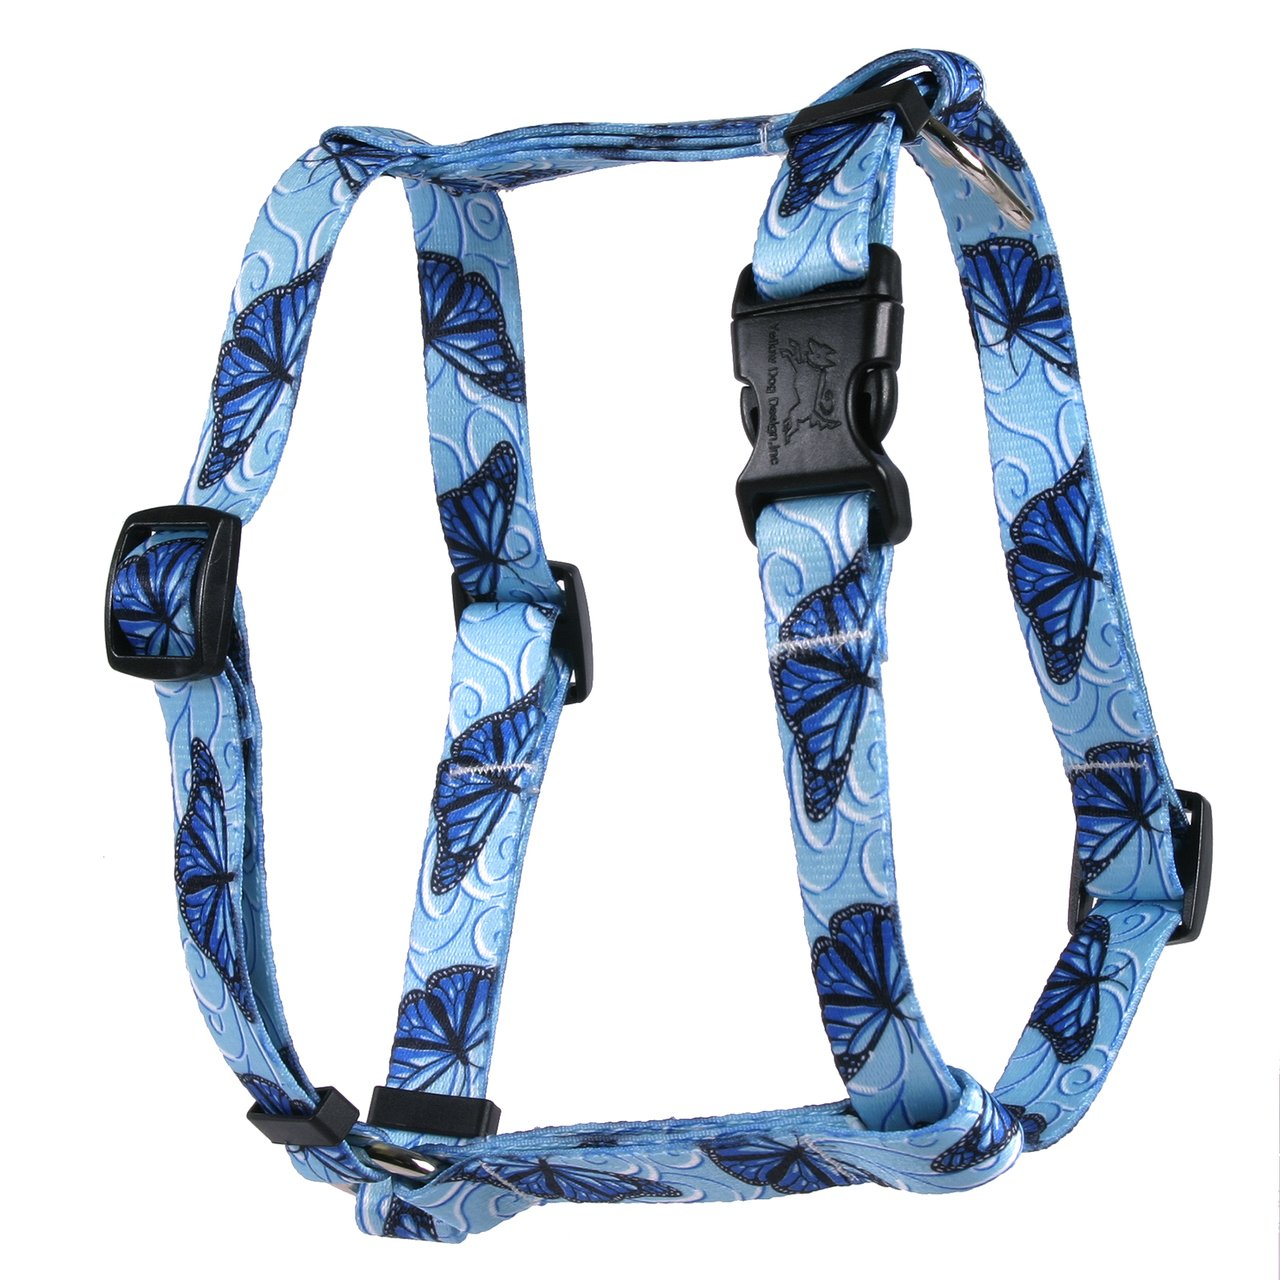 Yellow Dog Design Blue Butterfly Swirl Roman Style H Dog Harness, X-Large/1'' Wide by Yellow Dog Design (Image #1)